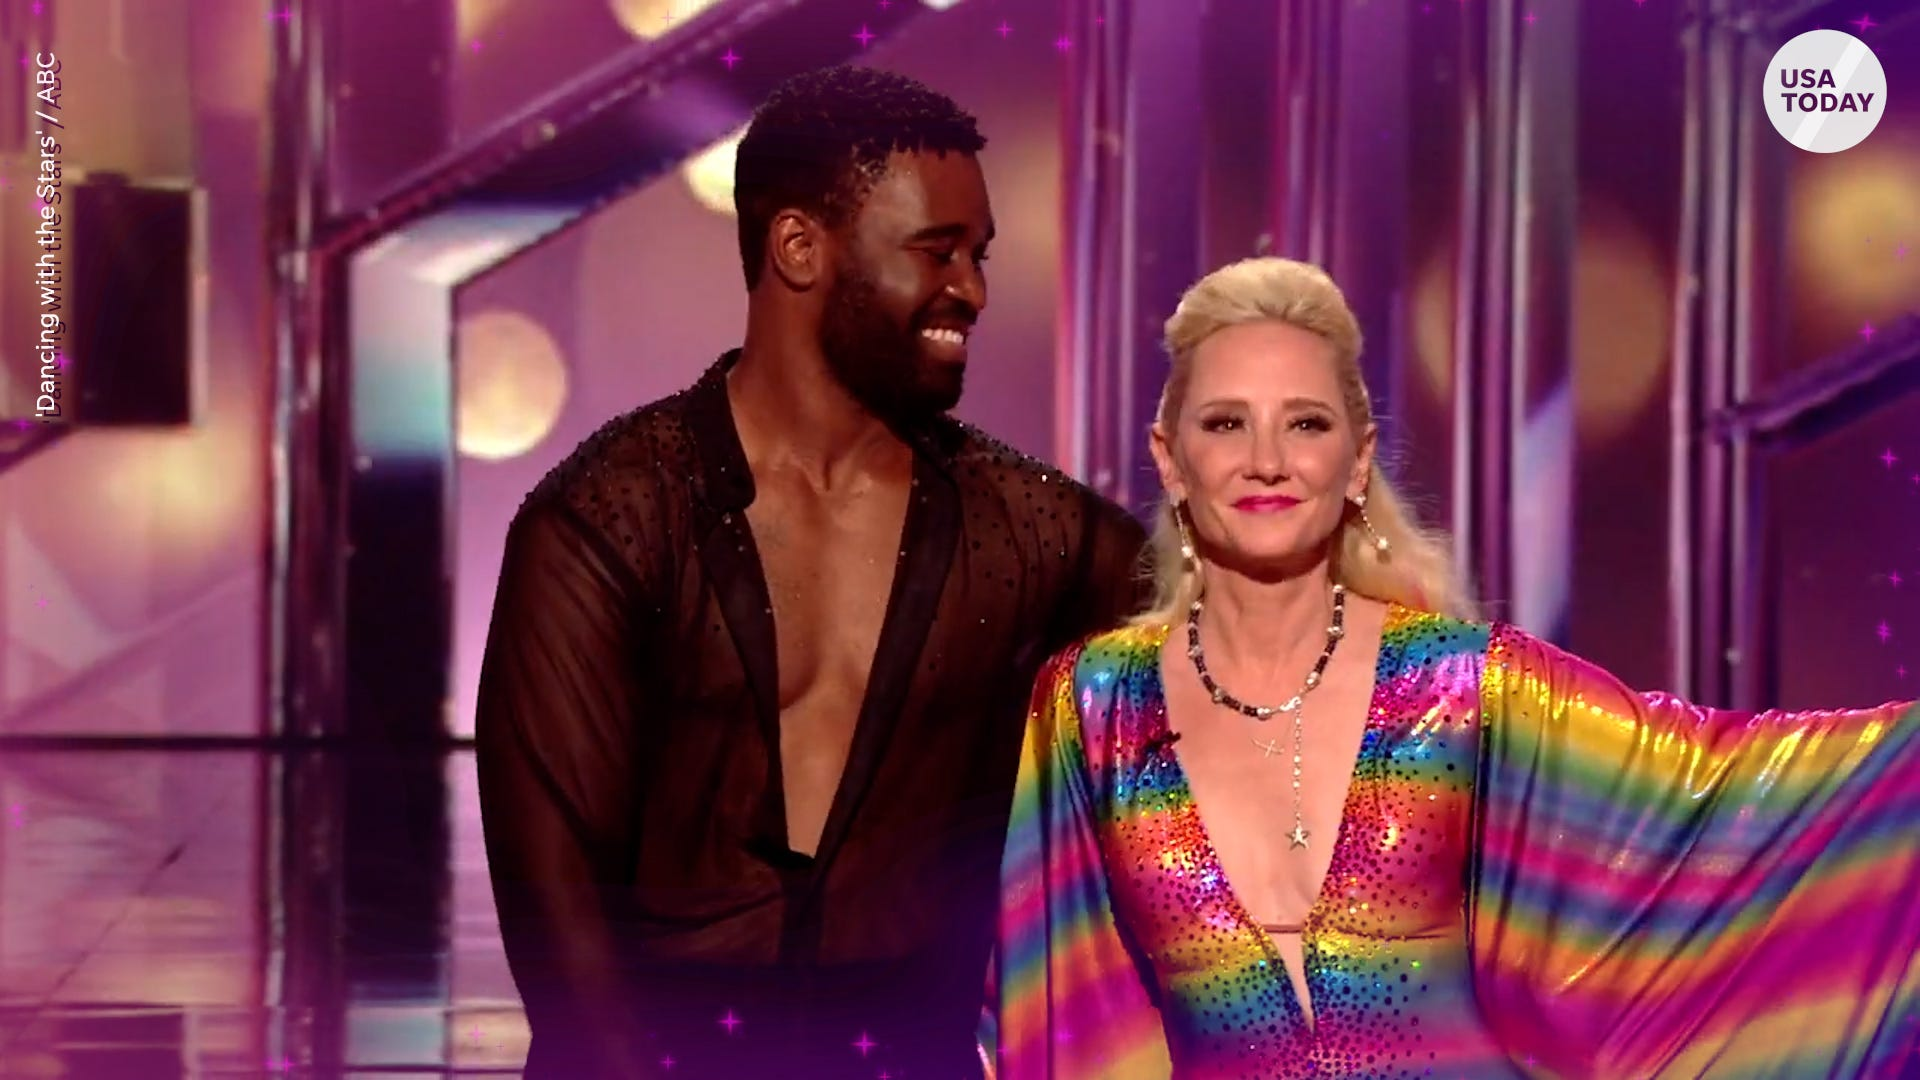 Anne Heche's night on 'Dancing with the Stars' includes Ellen revelation, ballroom mixup